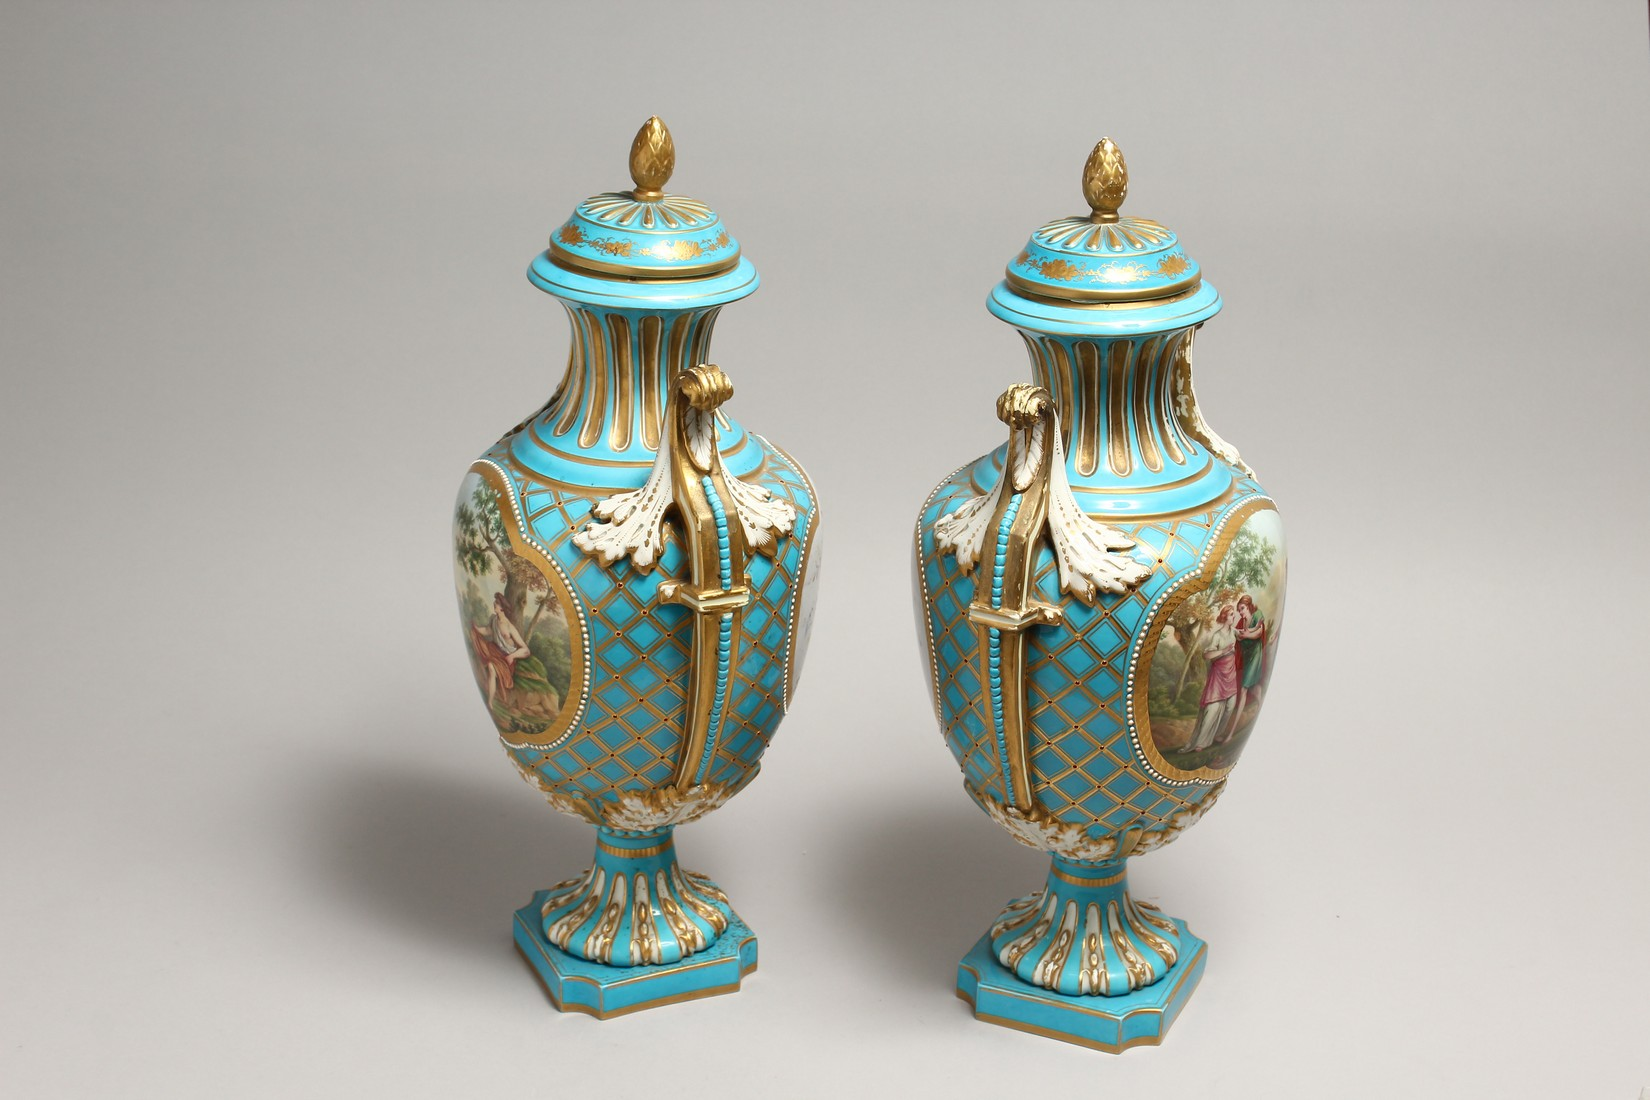 A SUPERB LARGE PAIR OF SEVRES TWO HANDLED URN SHAPED VASES AND COVERS, blue ground edged in gilt and - Image 8 of 10